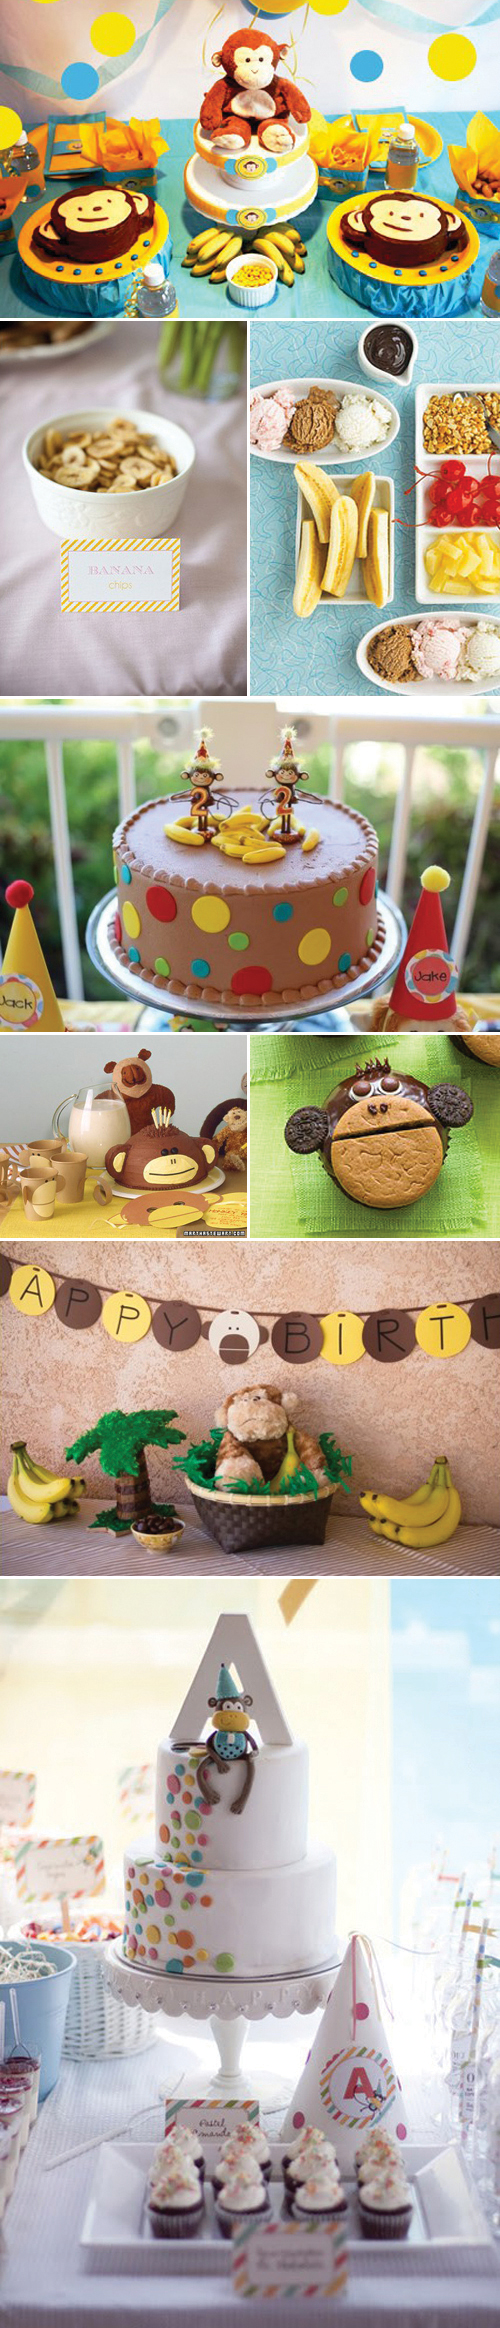 Monkey and Banana Birthday Party Inspiration